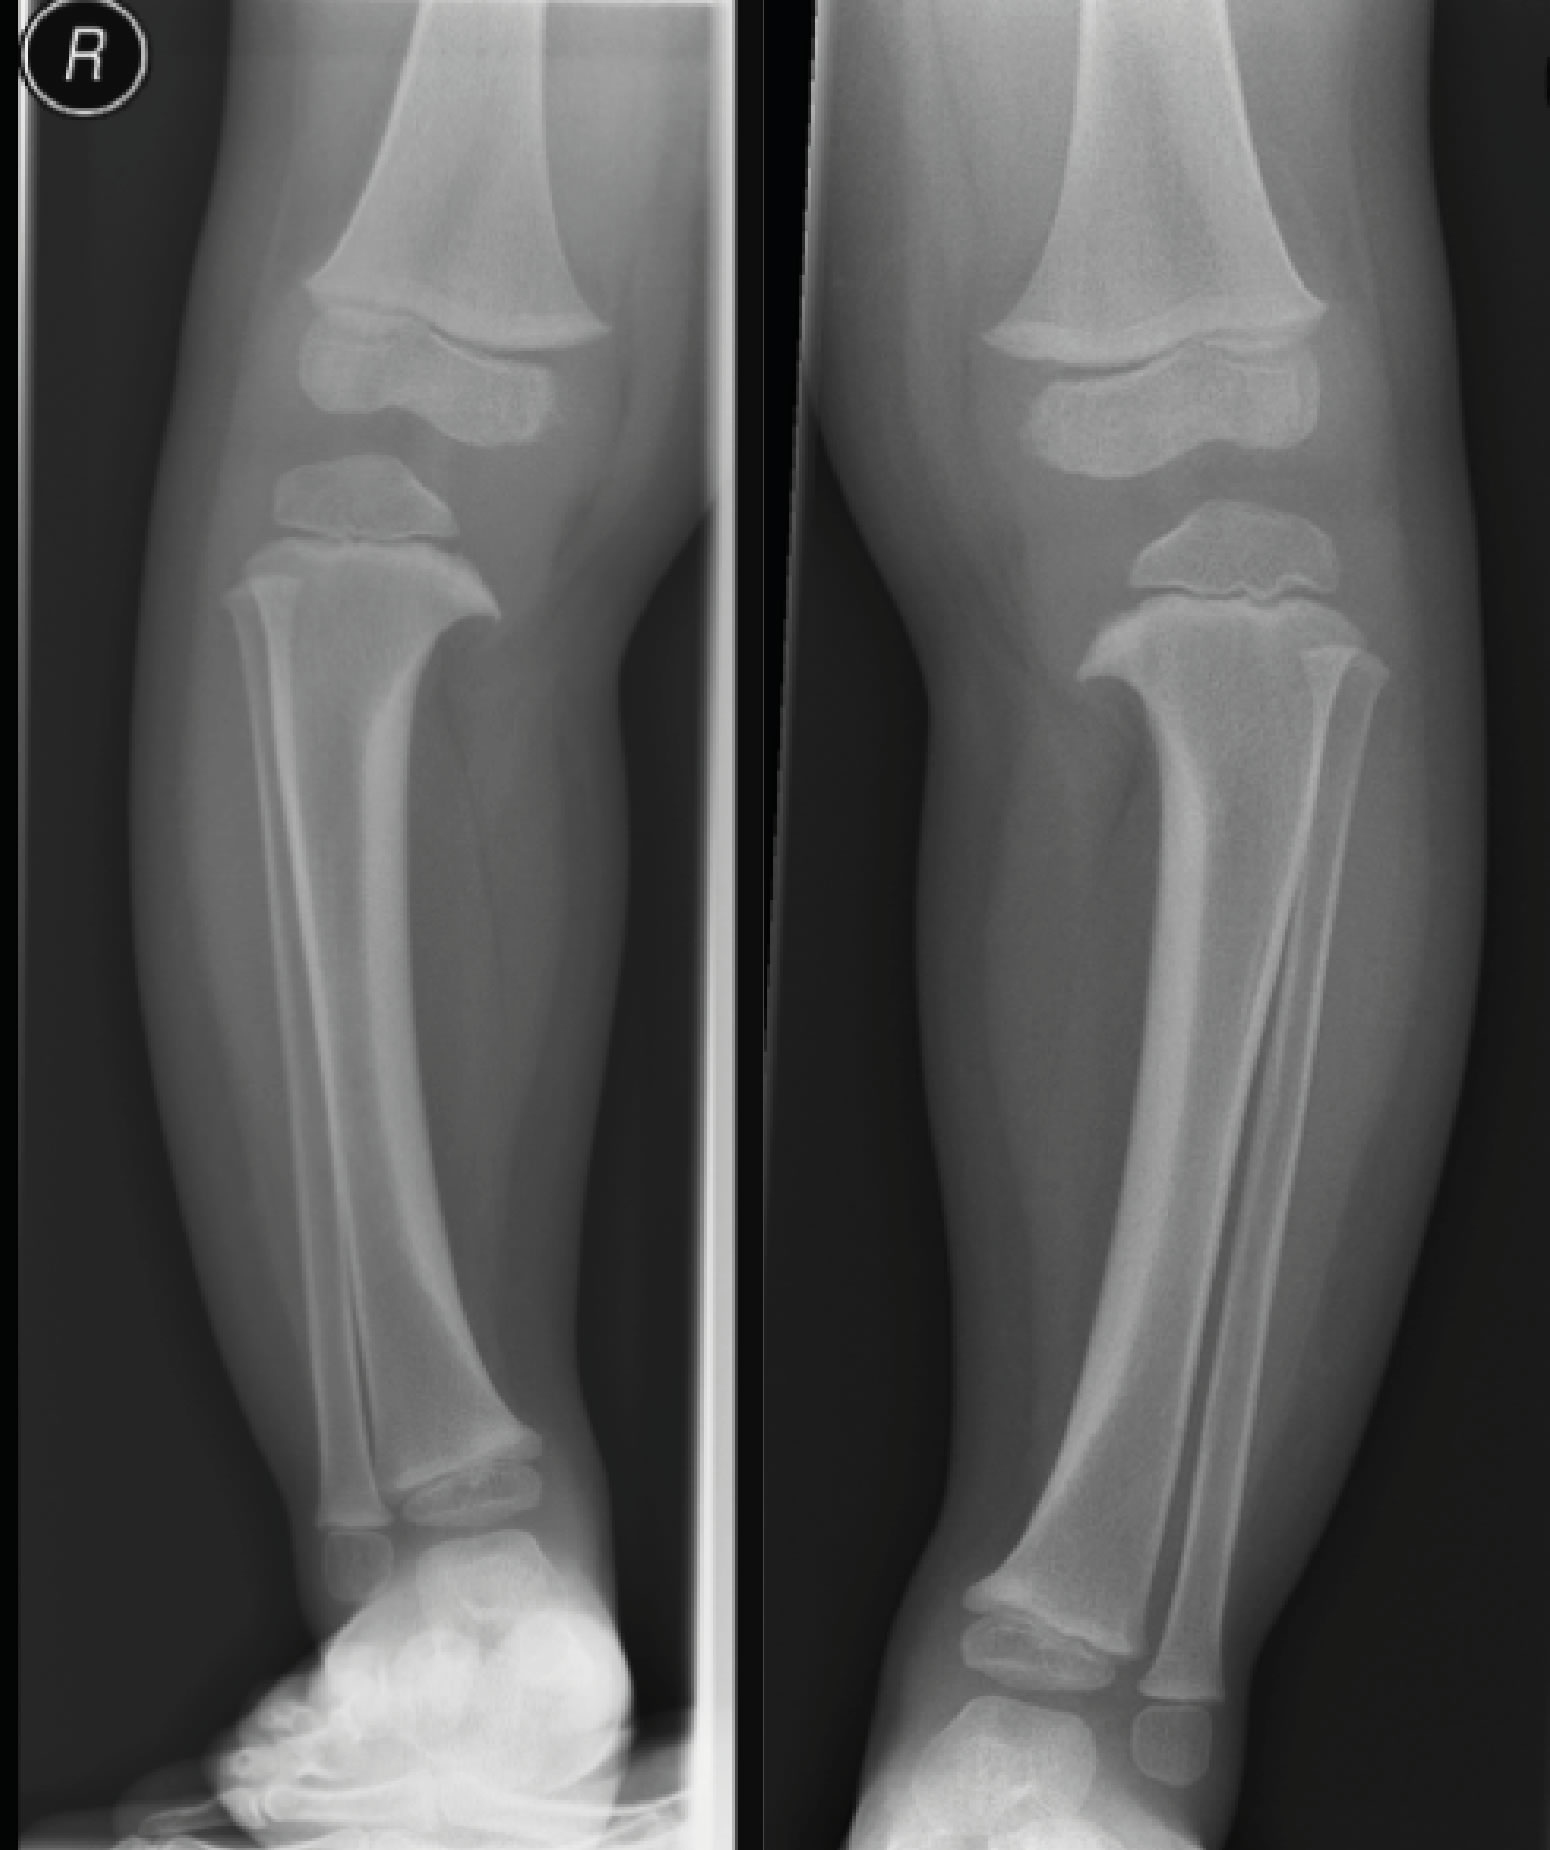 x-ray of legs at 2yrs old showing Blount's disease